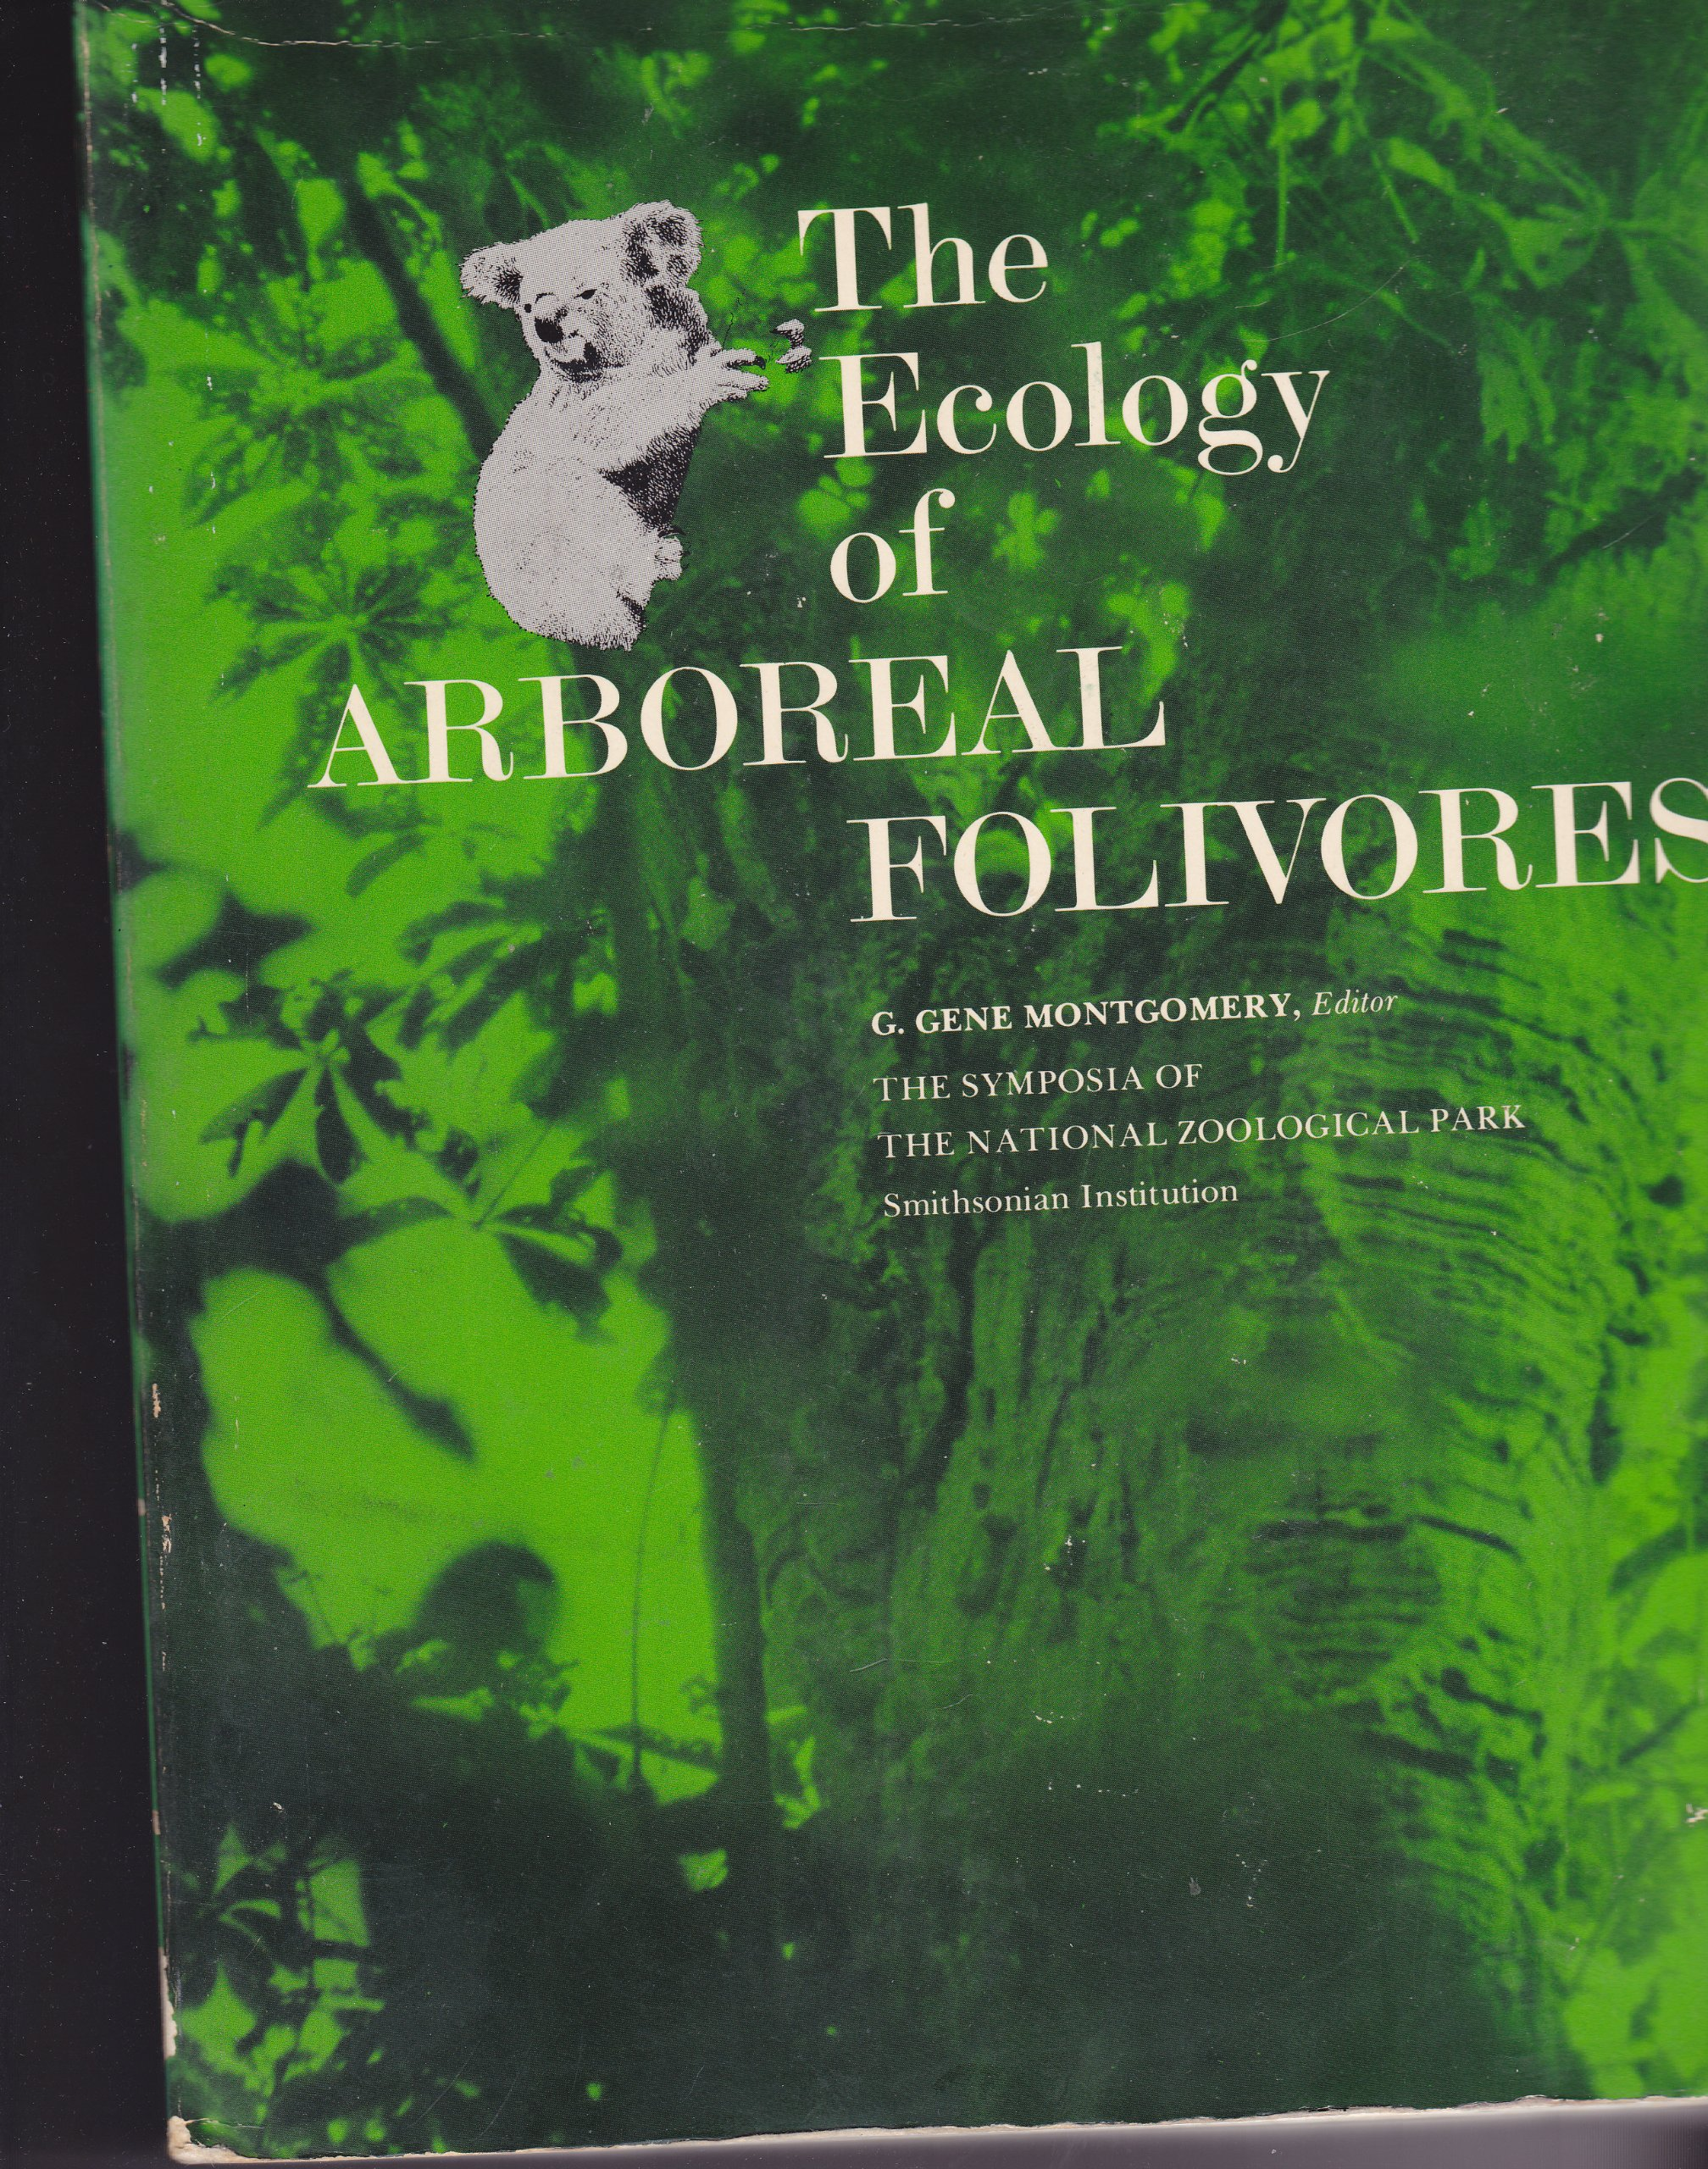 Ecology of Arboreal Folivores (Symposia of the National Zoological Park):  Amazon.co.uk: Montgomery, G.Gene: 9780874746464: Books